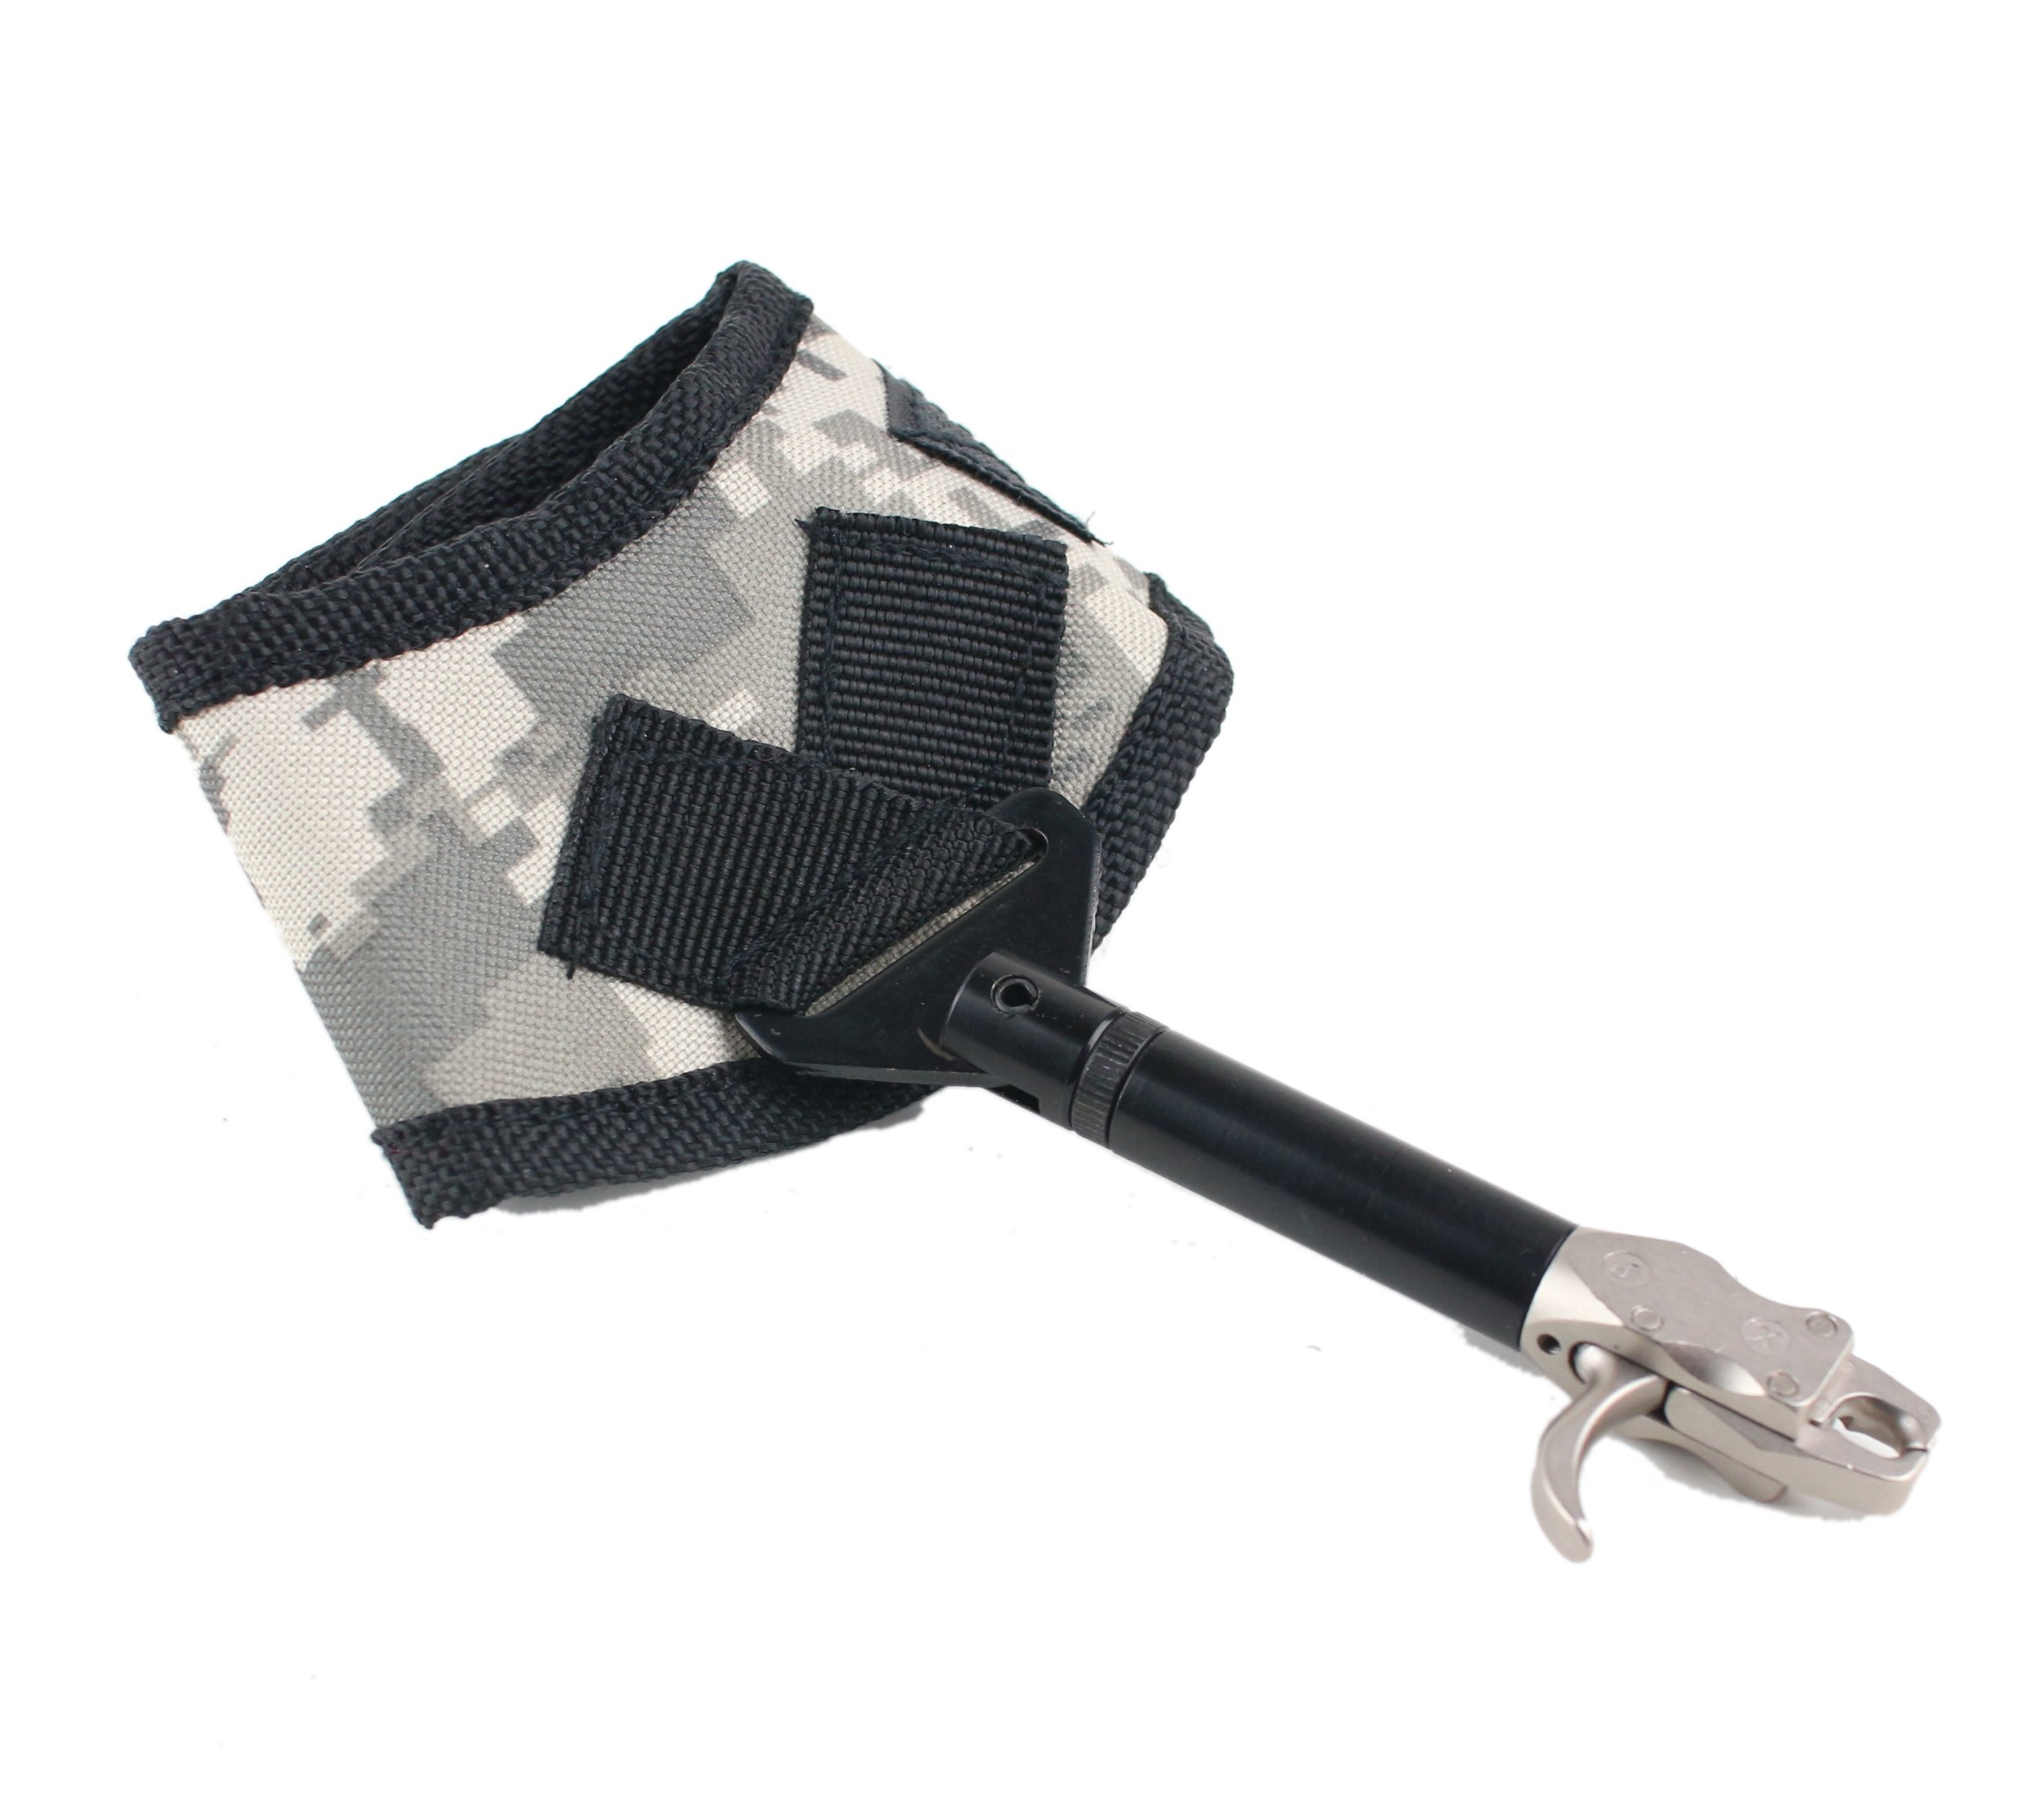 Sinoart Adjustable Compound Bow Release Aid Trigger for Hunting with Buckle Wrist Strap Archery Caplier Shooting Trigger Accessories